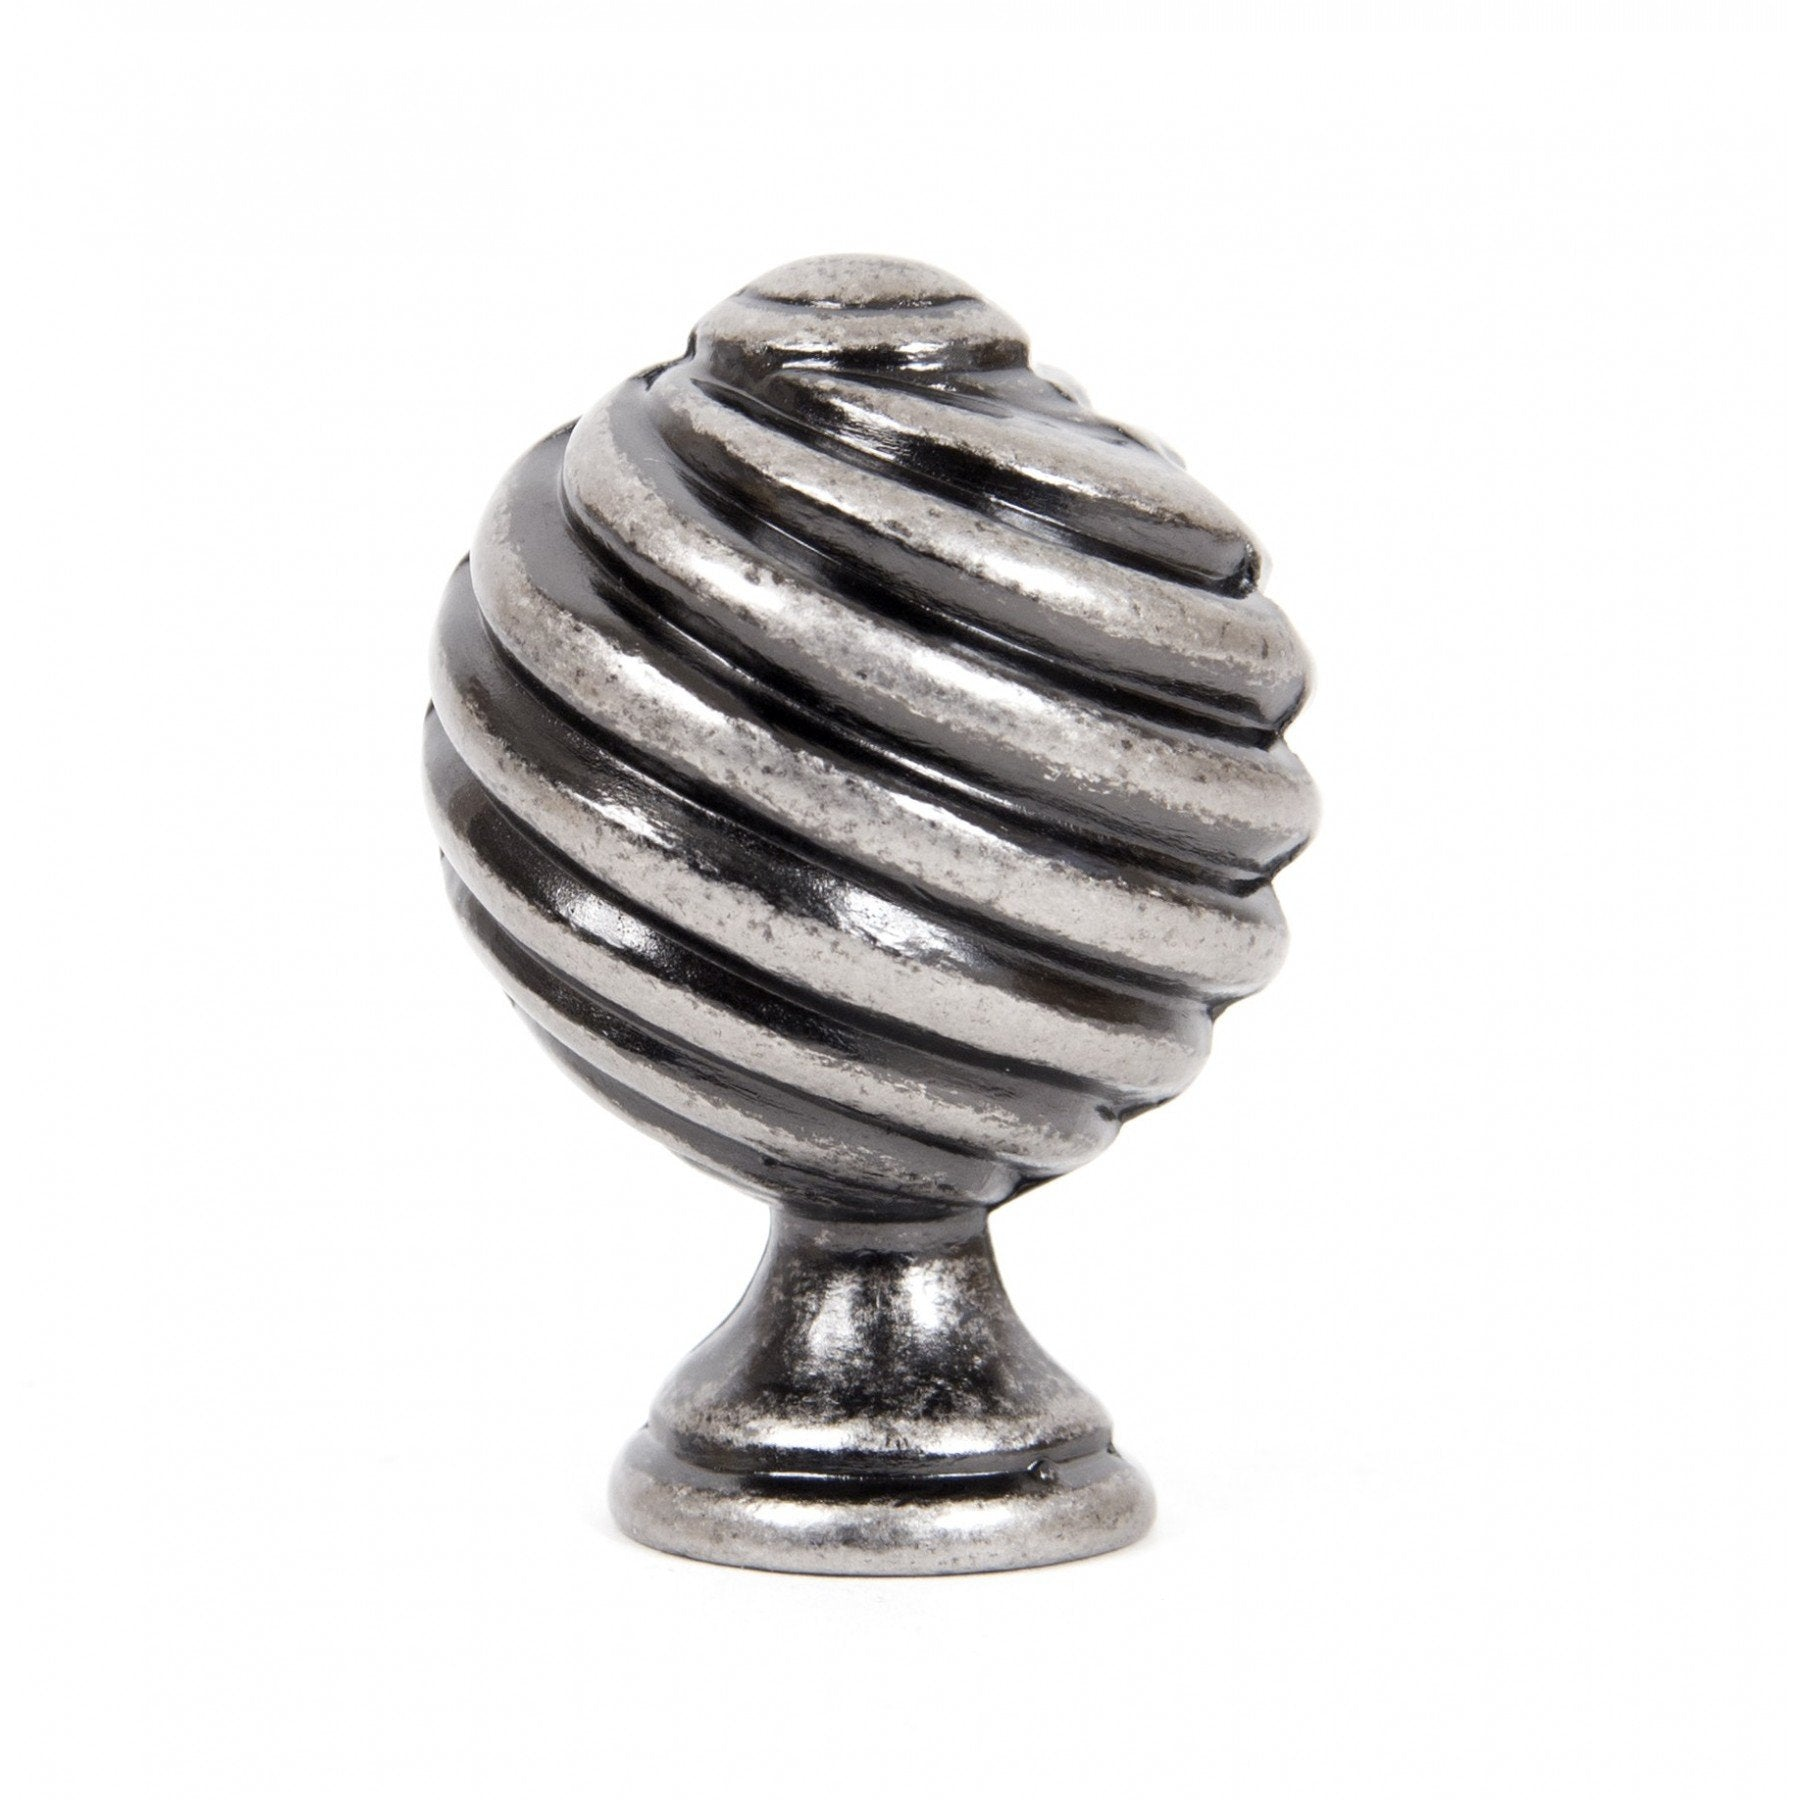 Pewter Patina Twist Knob - No.42 Interiors